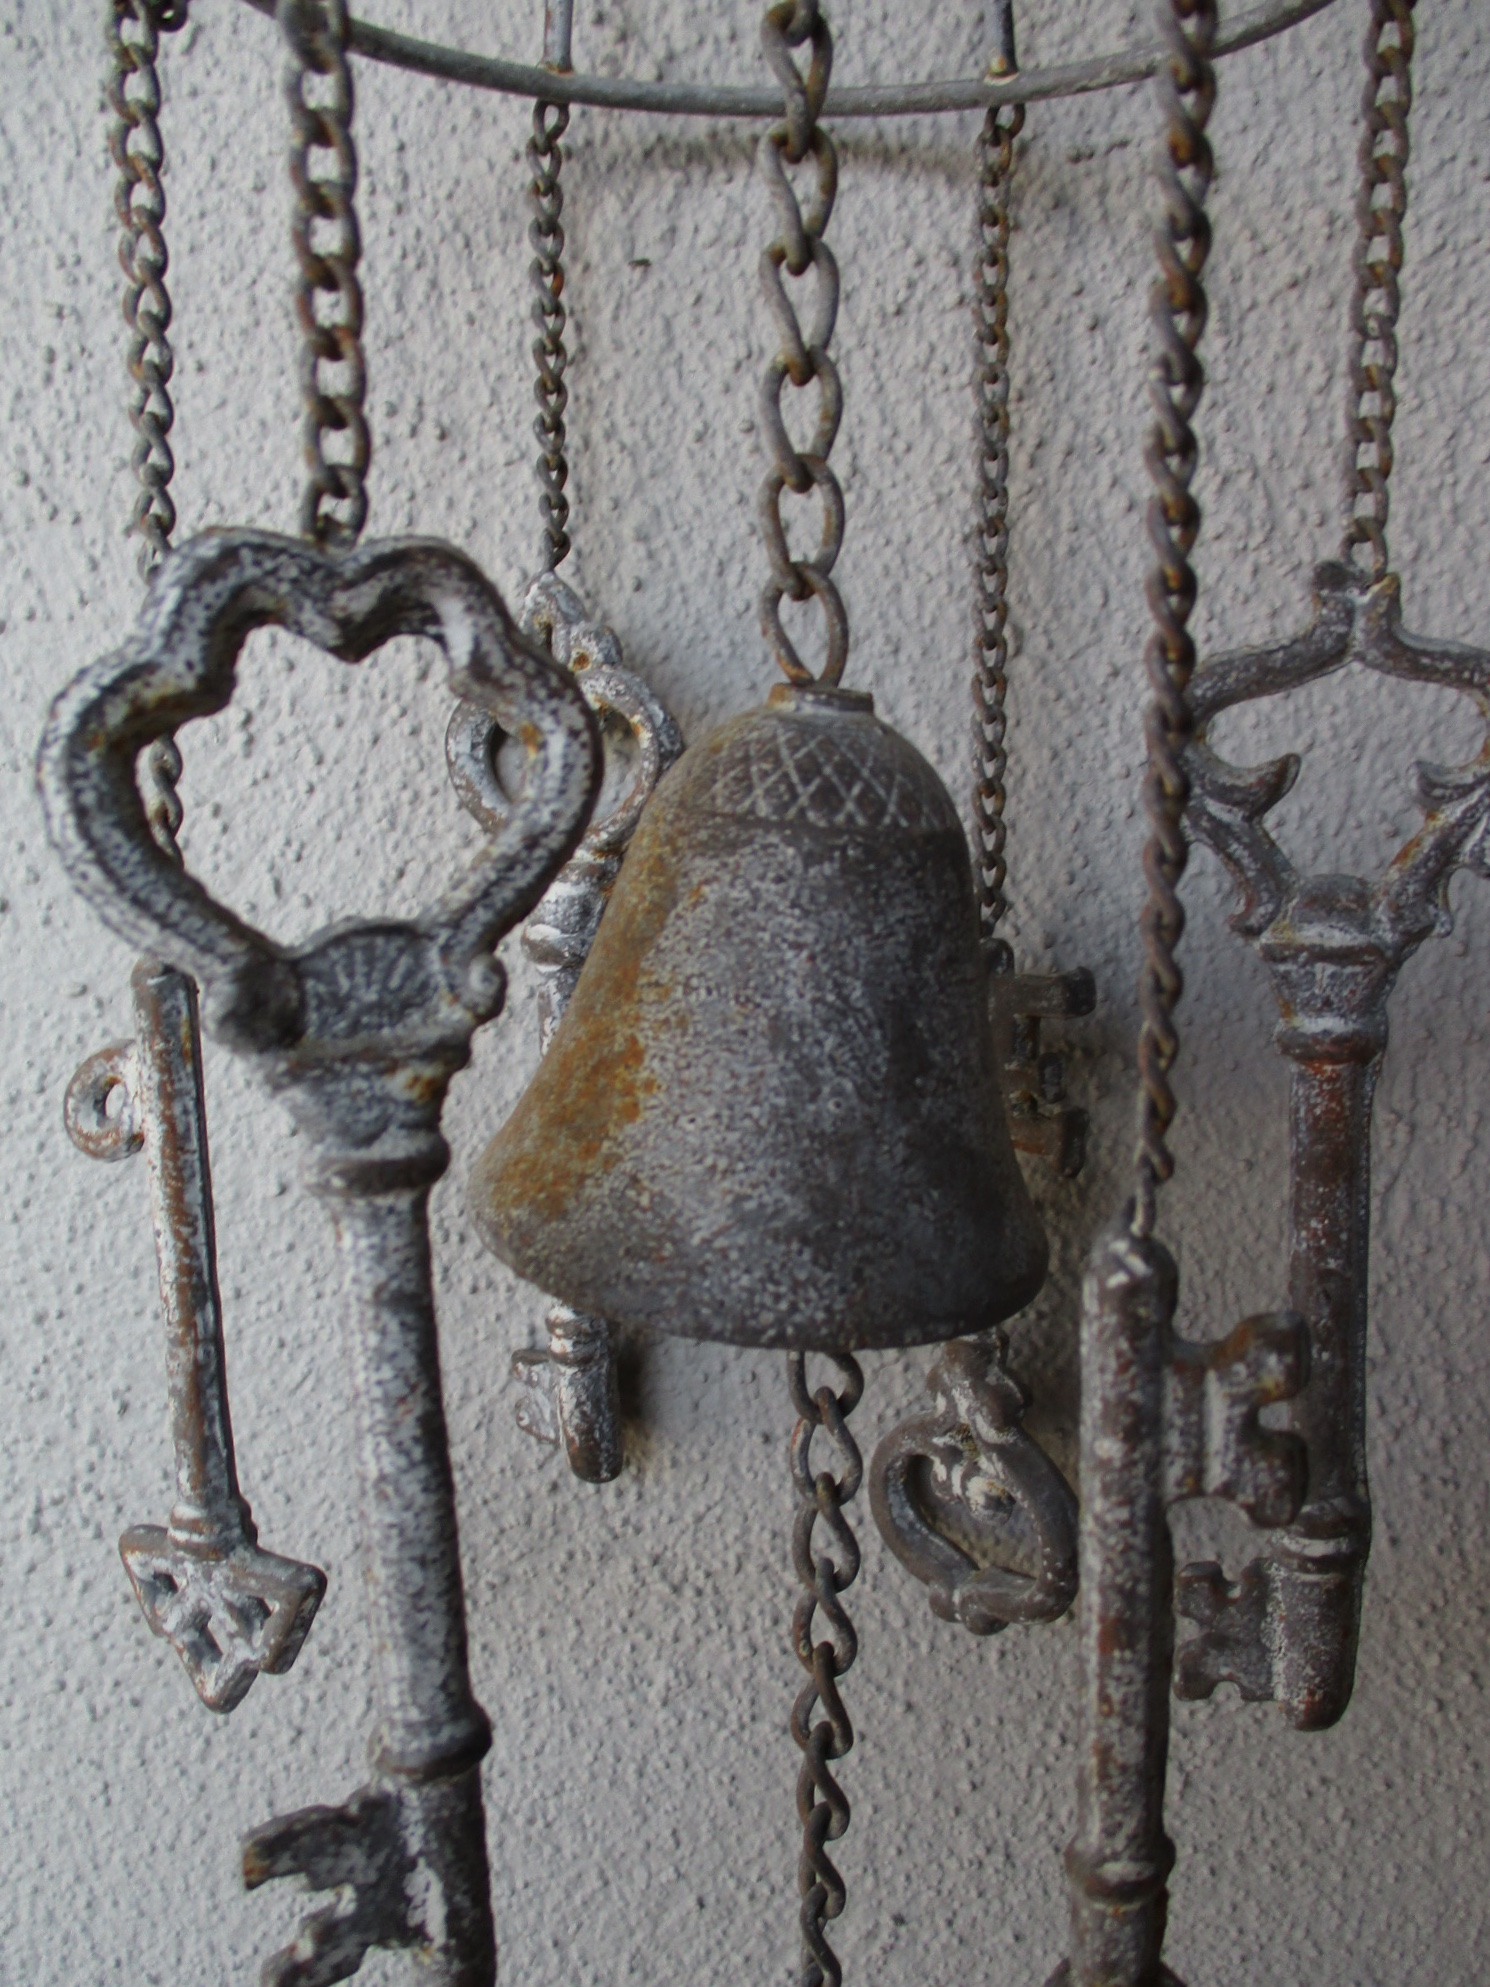 how to make a wind chime with keys